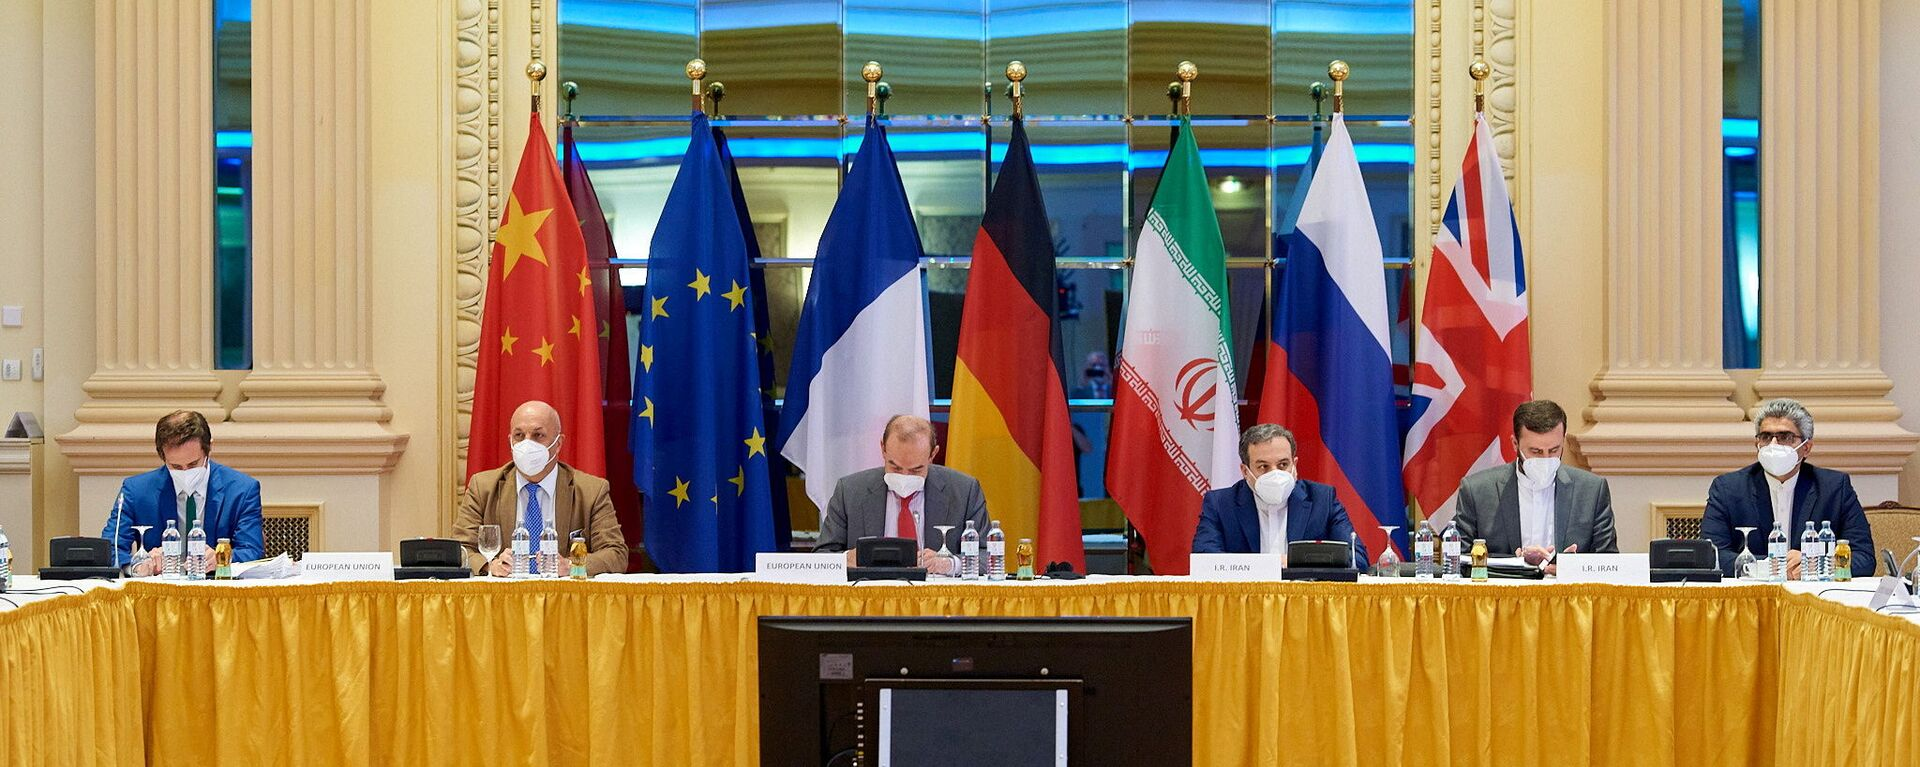 European External Action Service (EEAS) Deputy Secretary General Enrique Mora and Iranian Deputy at Ministry of Foreign Affairs Abbas Araghchi wait for the start of talks on reviving the 2015 Iran nuclear deal in Vienna, Austria June 20, 2021 - Sputnik International, 1920, 21.06.2021